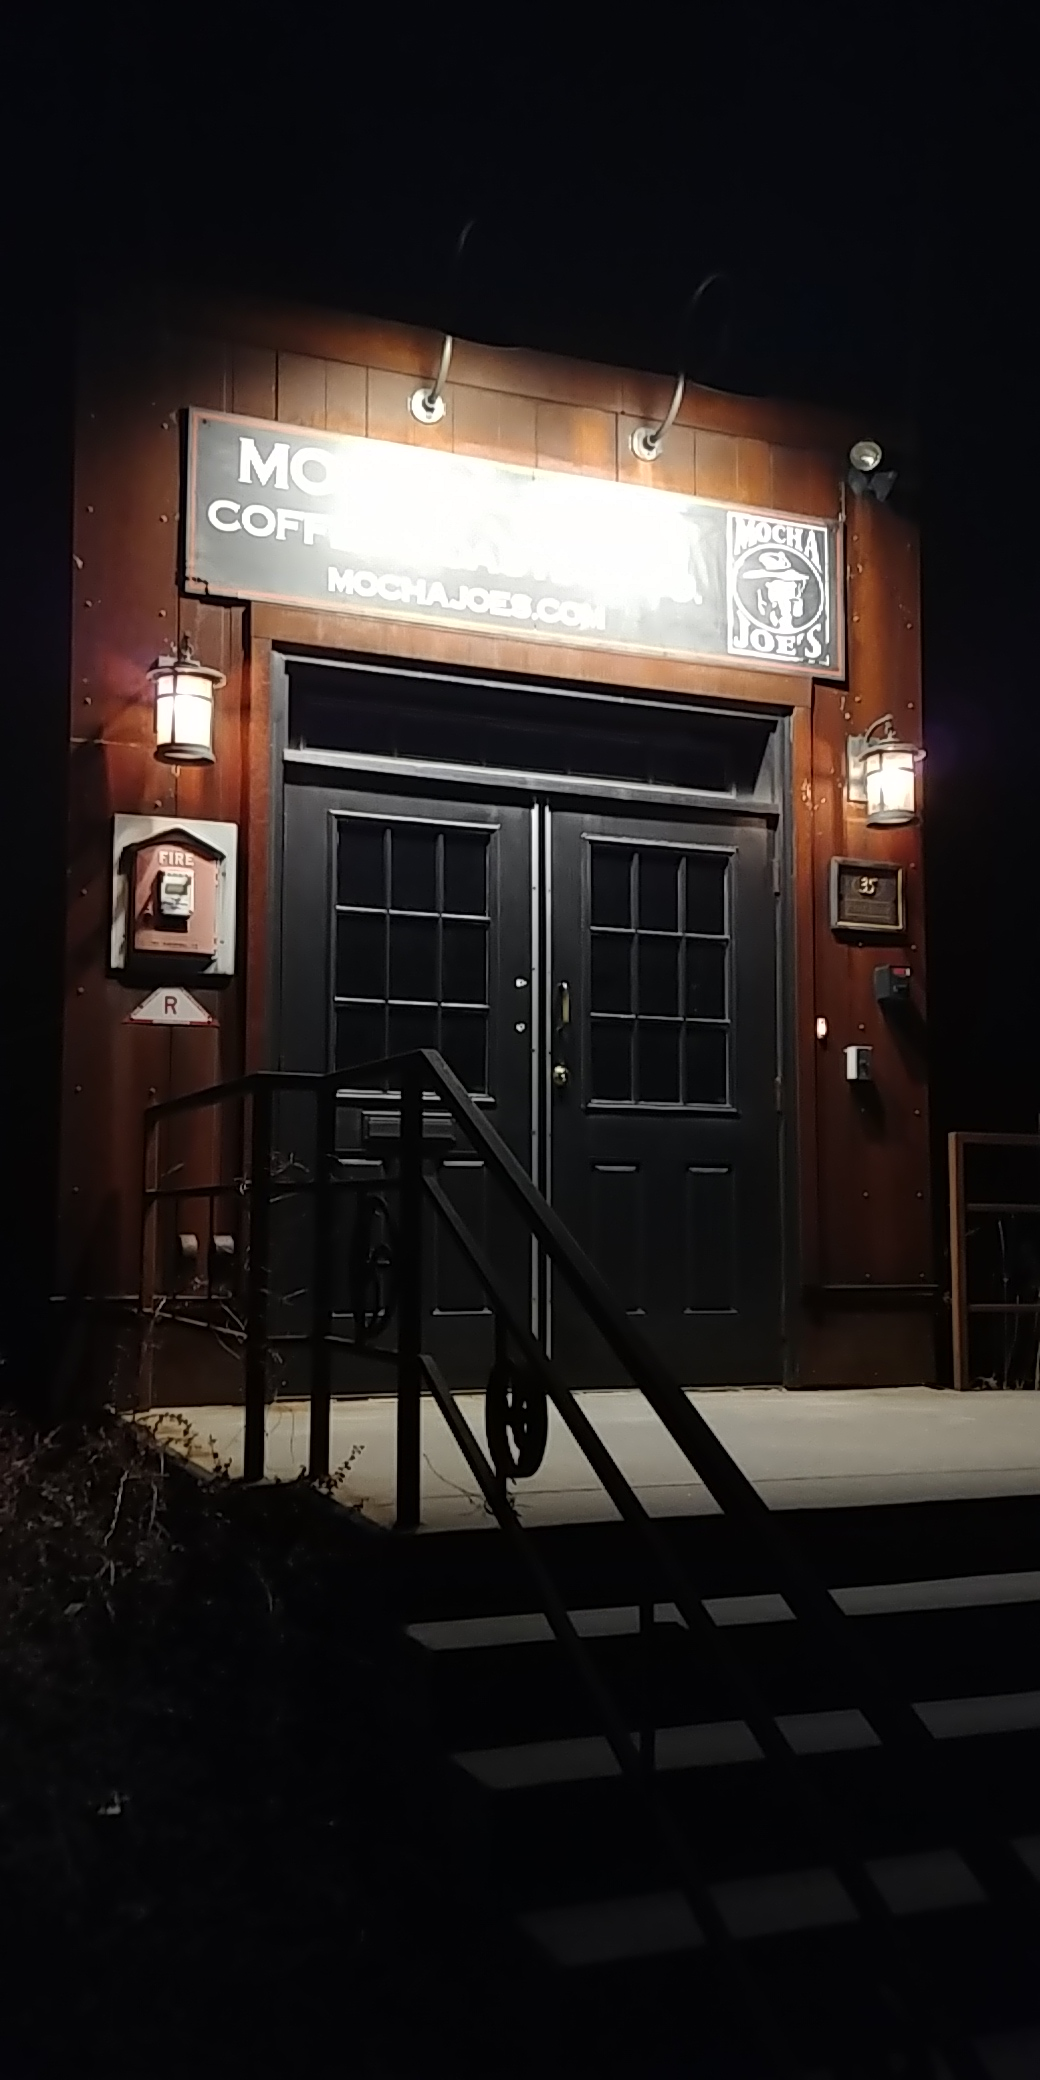 The entrance to our client Mocha Joe's Roasting Company at 35 Frost Street in Brattleboro, VT. Photo by our staff member and night walker Patrick Kitzmiller.